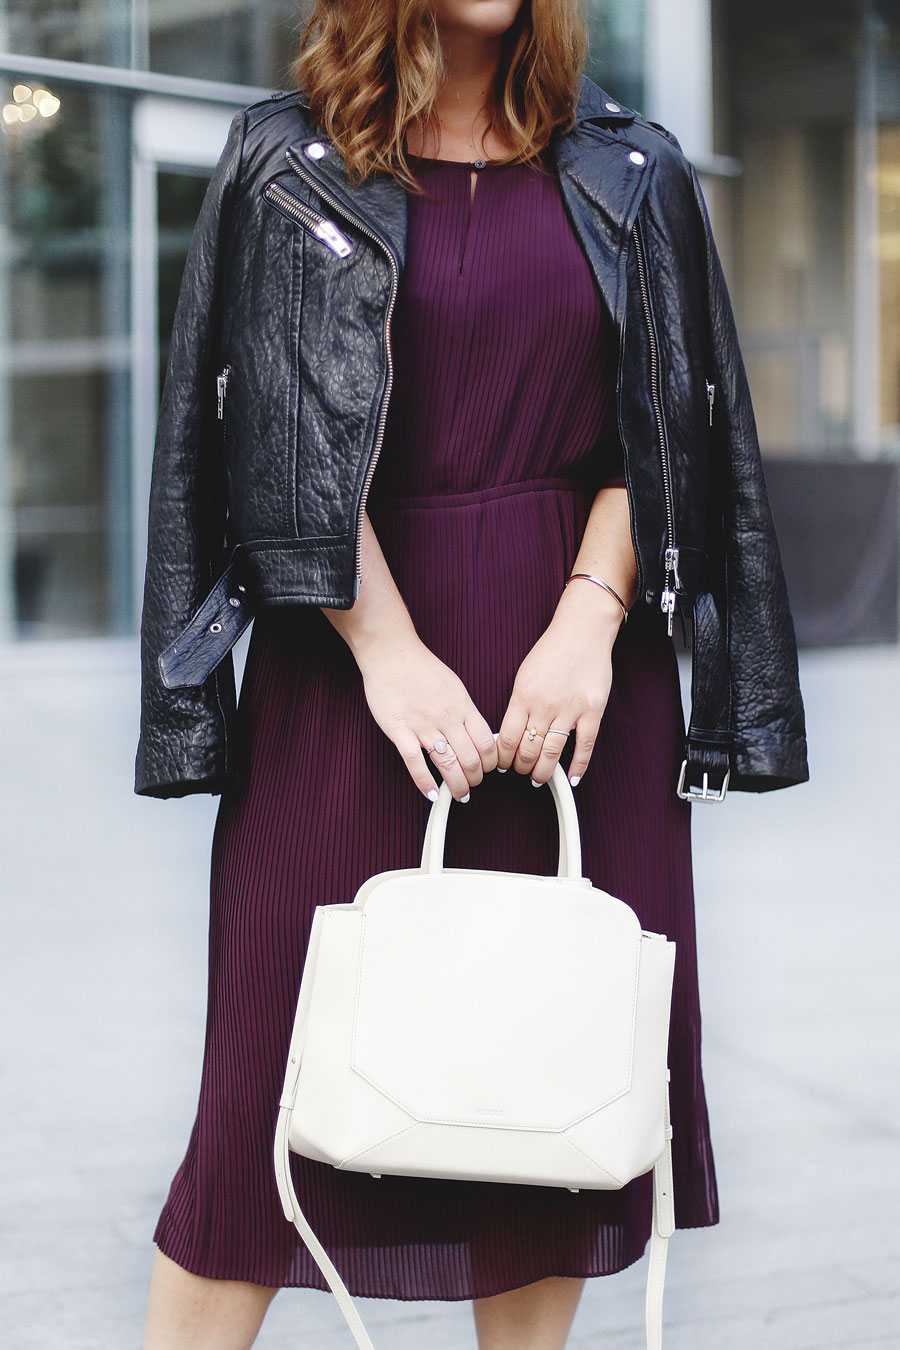 To Vogue or Bust shares details about the Aritzia warehouse sale 2016 in a Wilfred silk pleated dress, Mackage Rumer leather jacket, Aritzia Auxiliary Bega bag and black pumps.